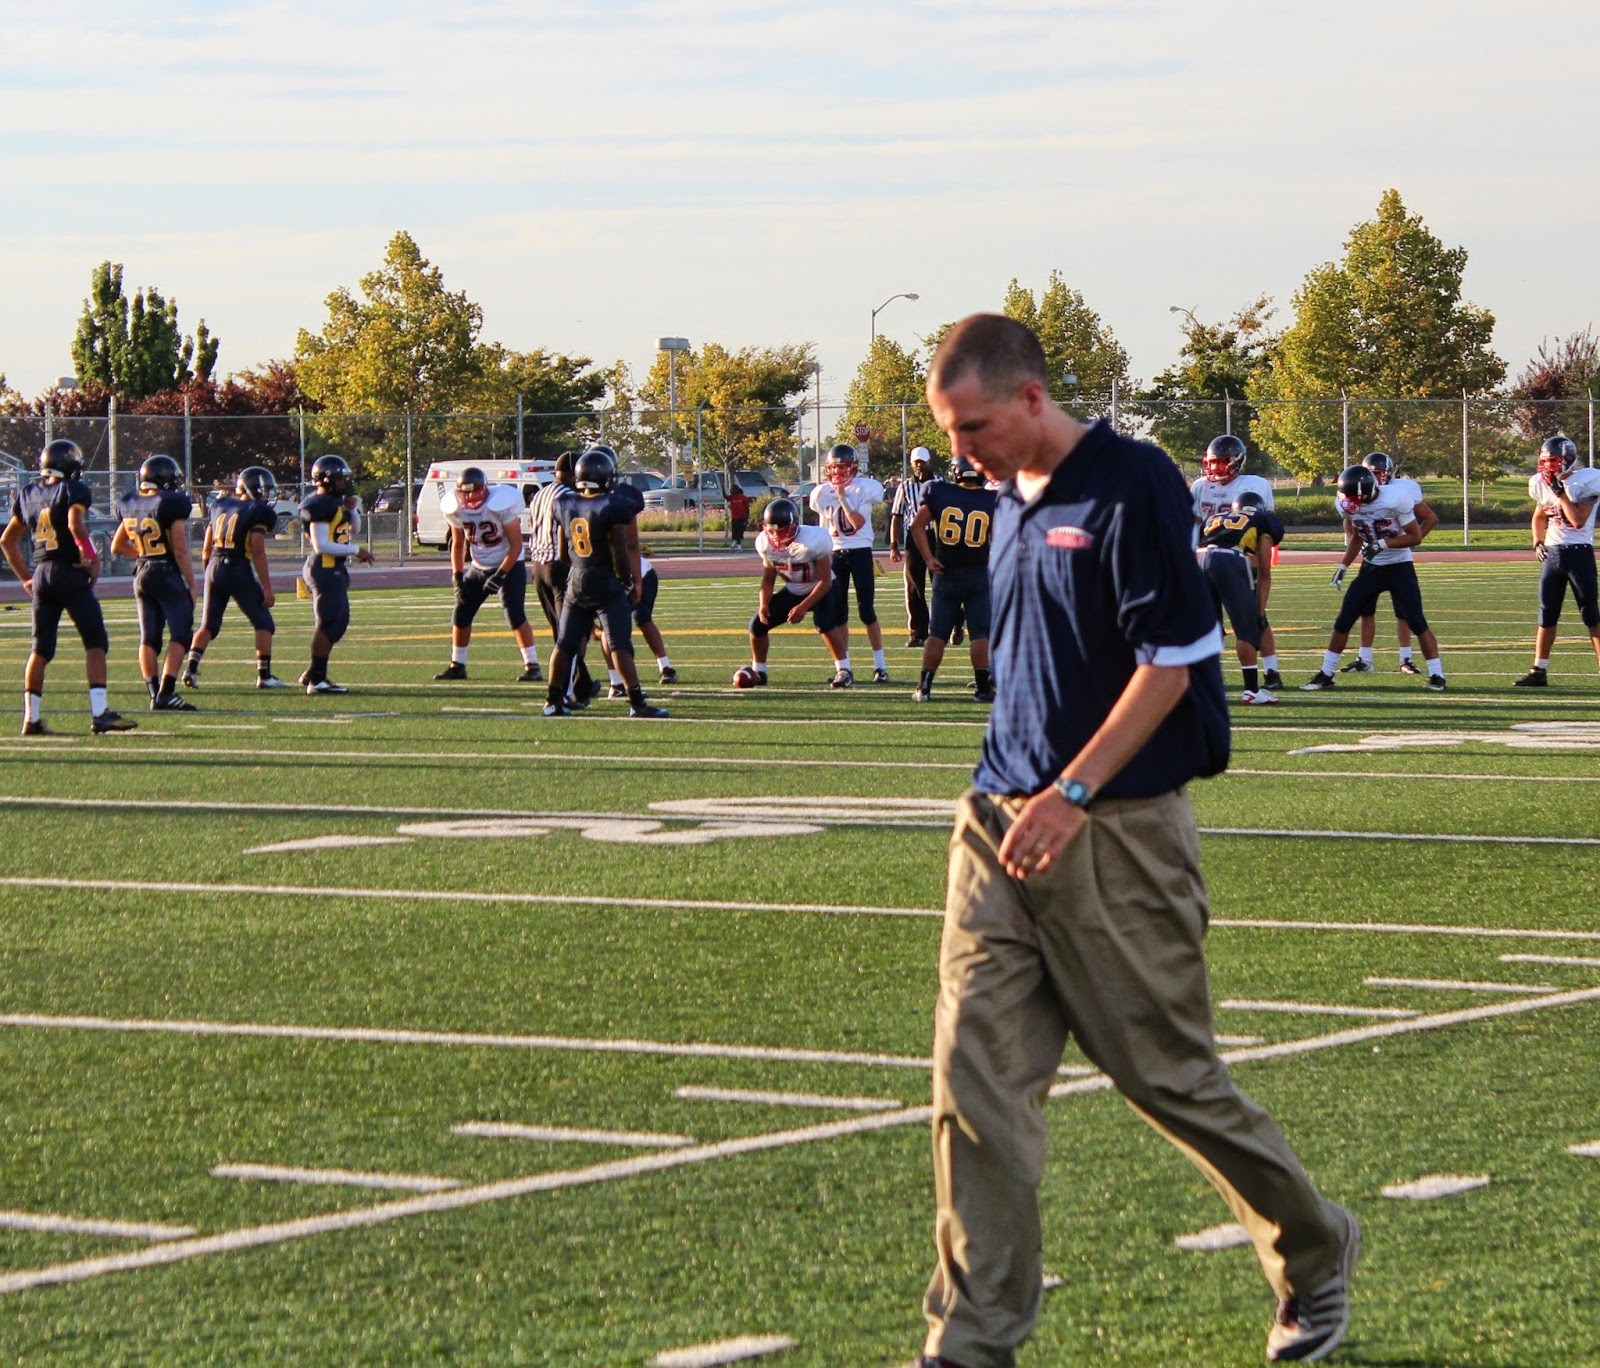 Cattolico Resigns At PG; Belden Hired As A.D.